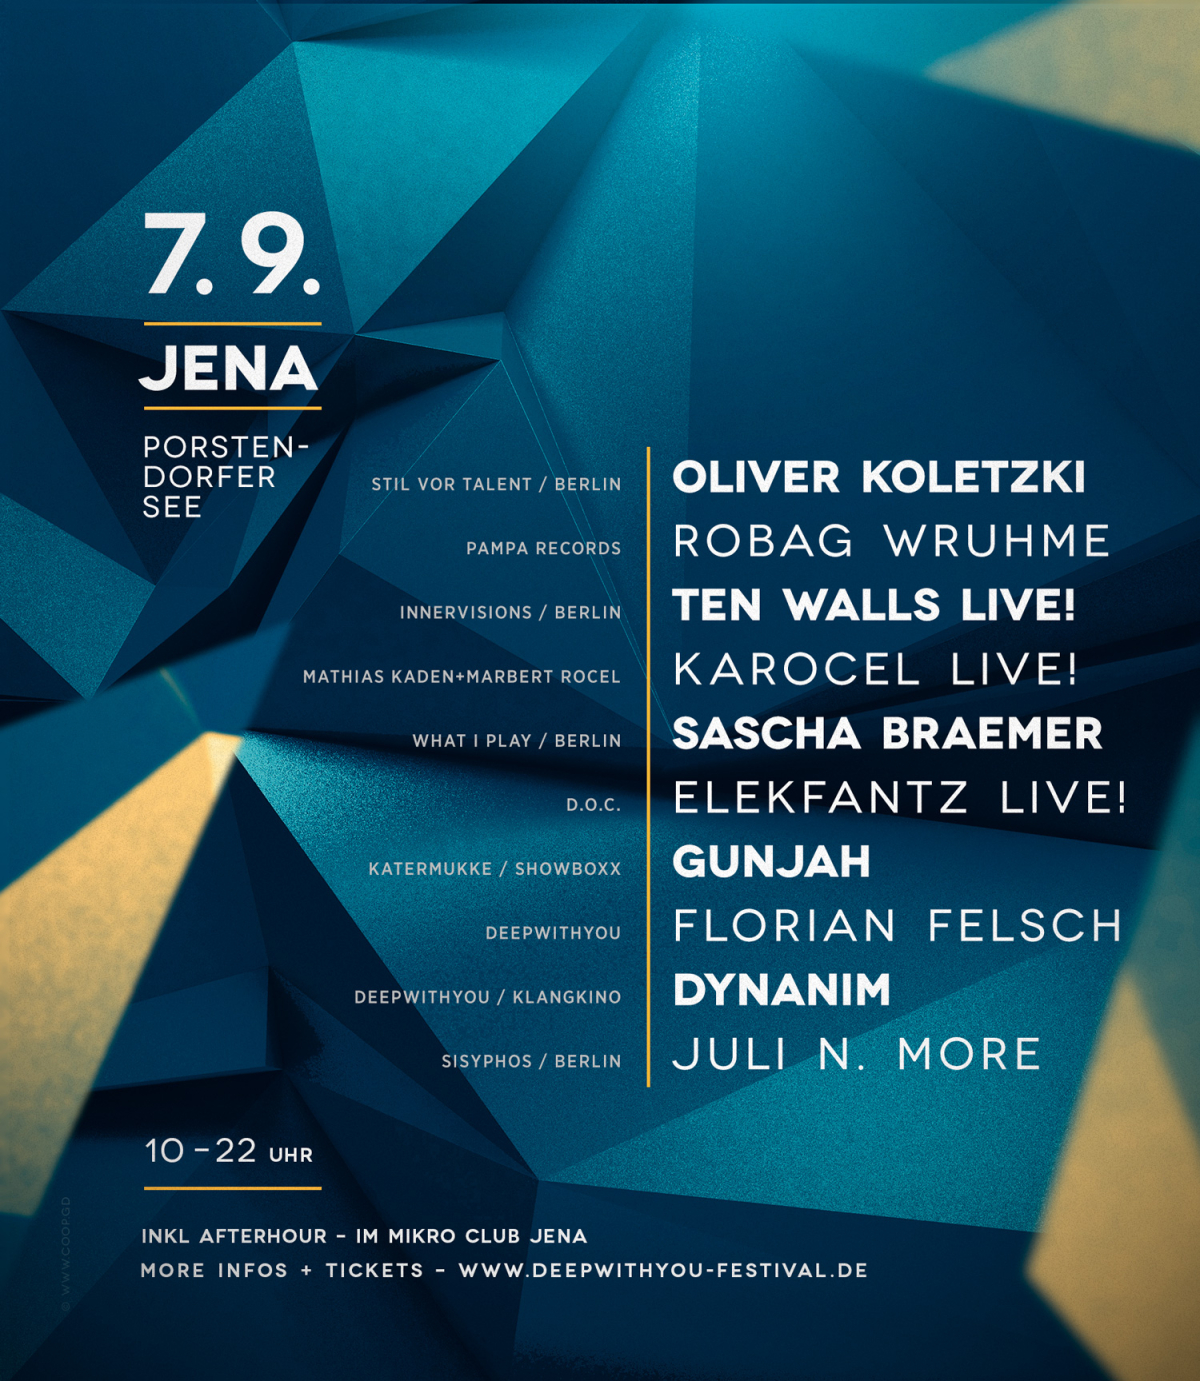 07.09.2014 – deep with you festival – Porstendorfer See, Jena